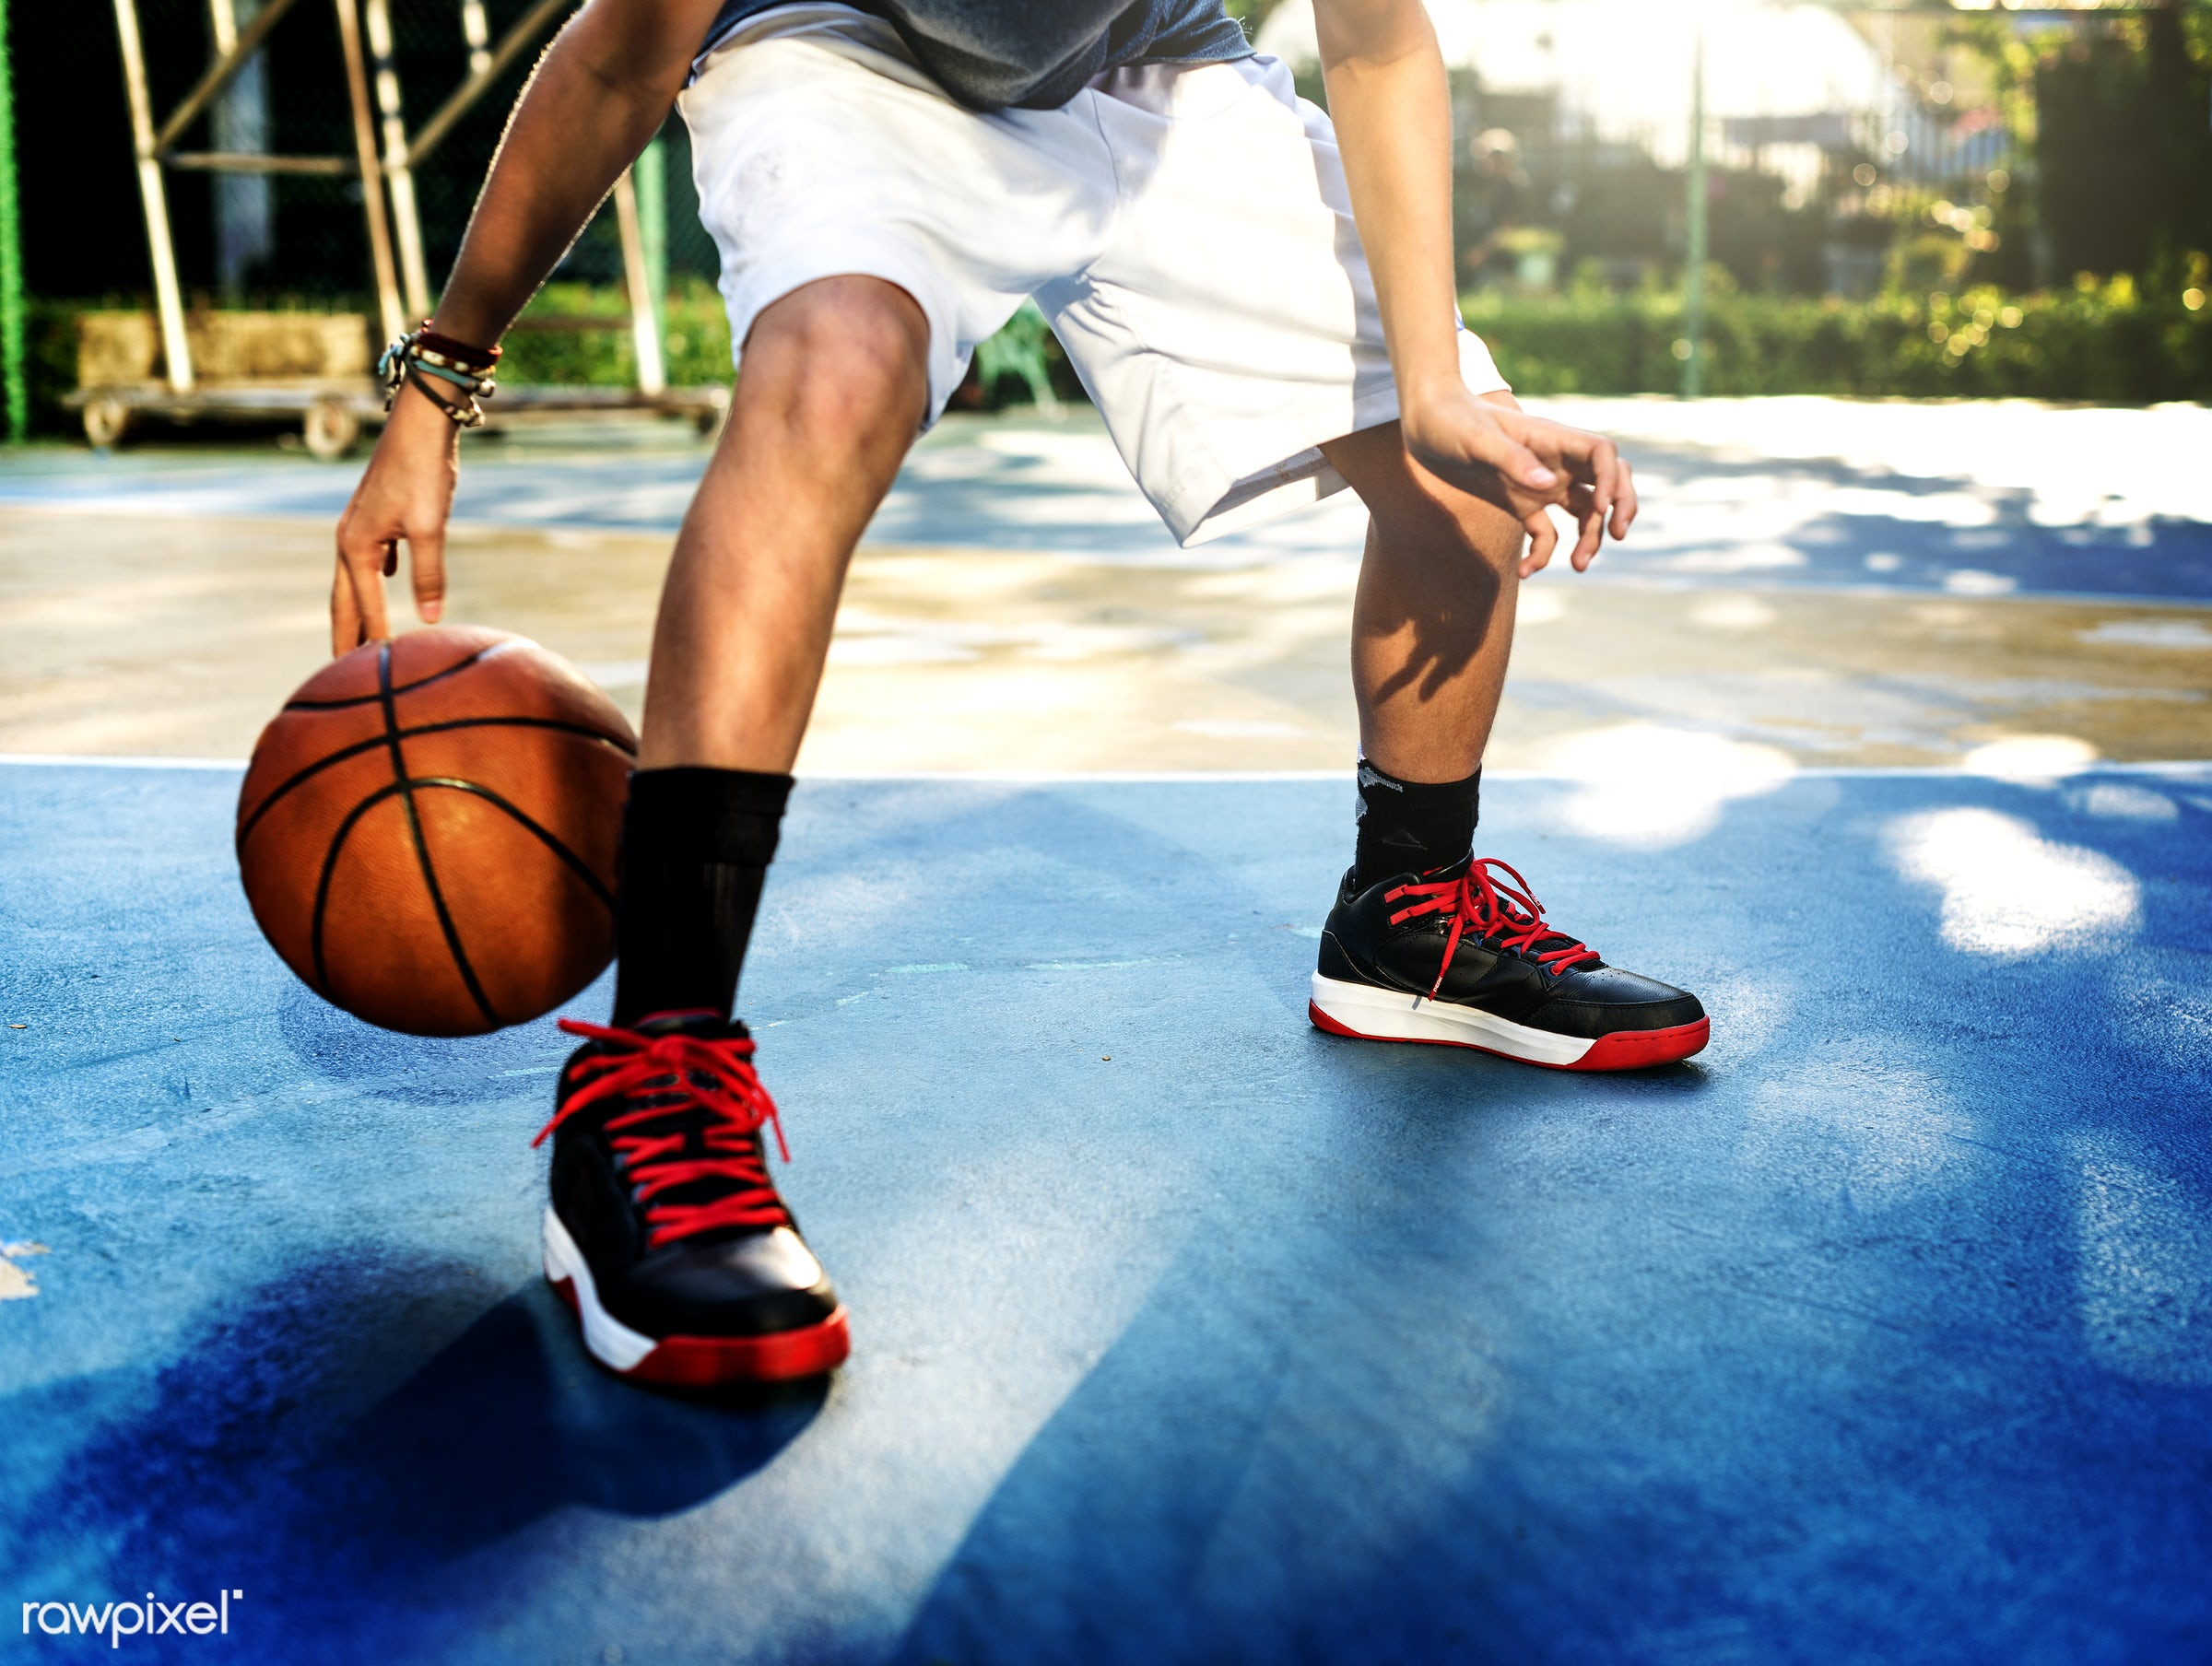 sport, activity, ball, basketball, boy, exercise, game, man, play, player, practice, strength, teen, young, youth